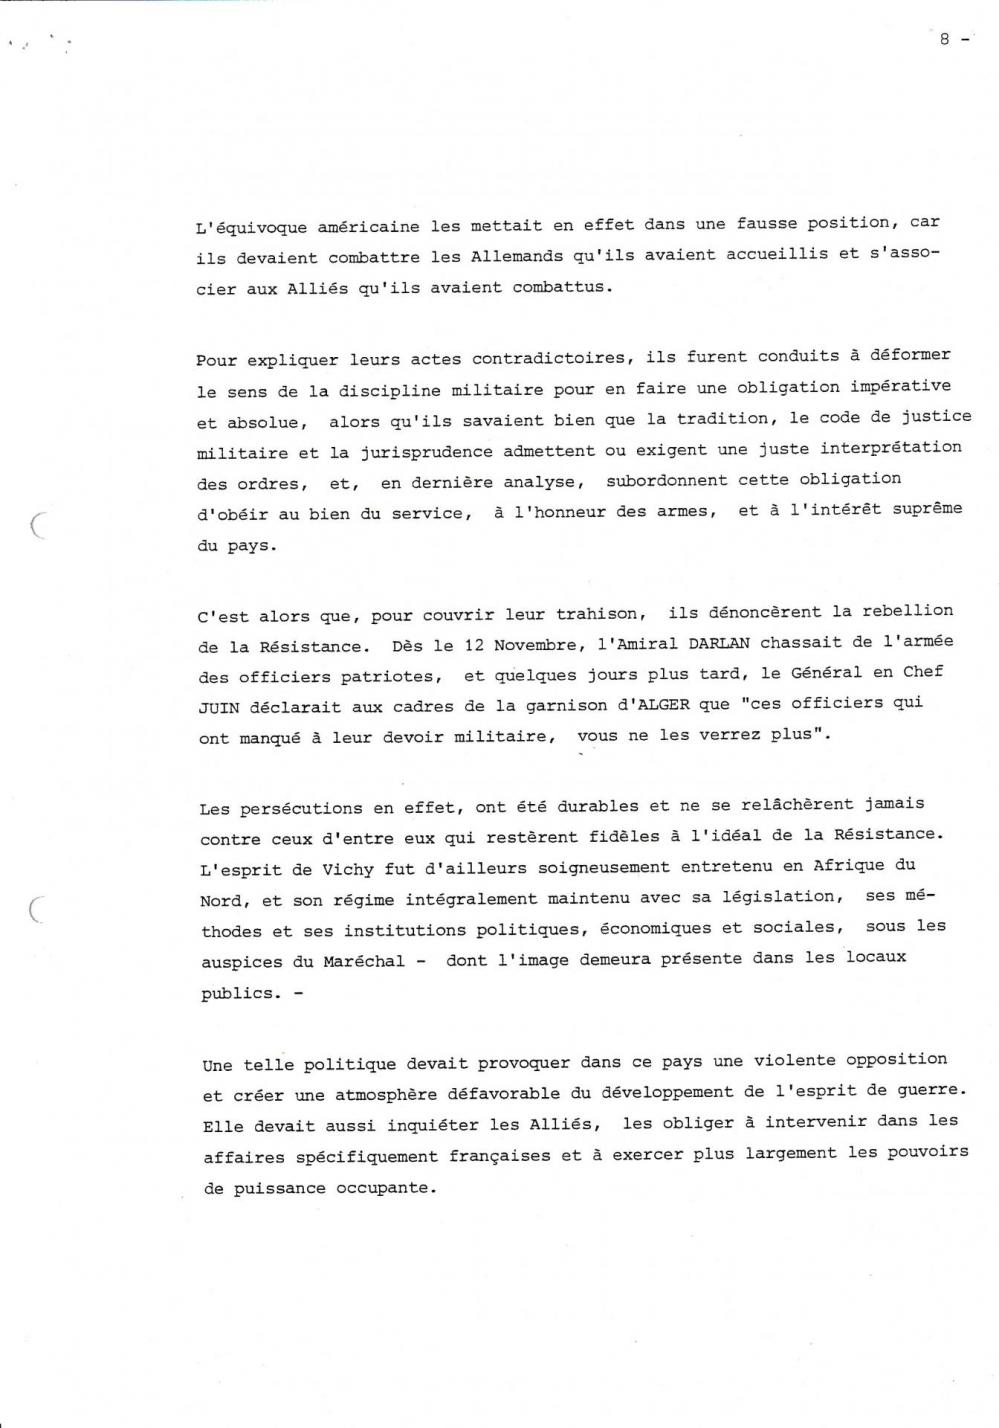 General jousse page8